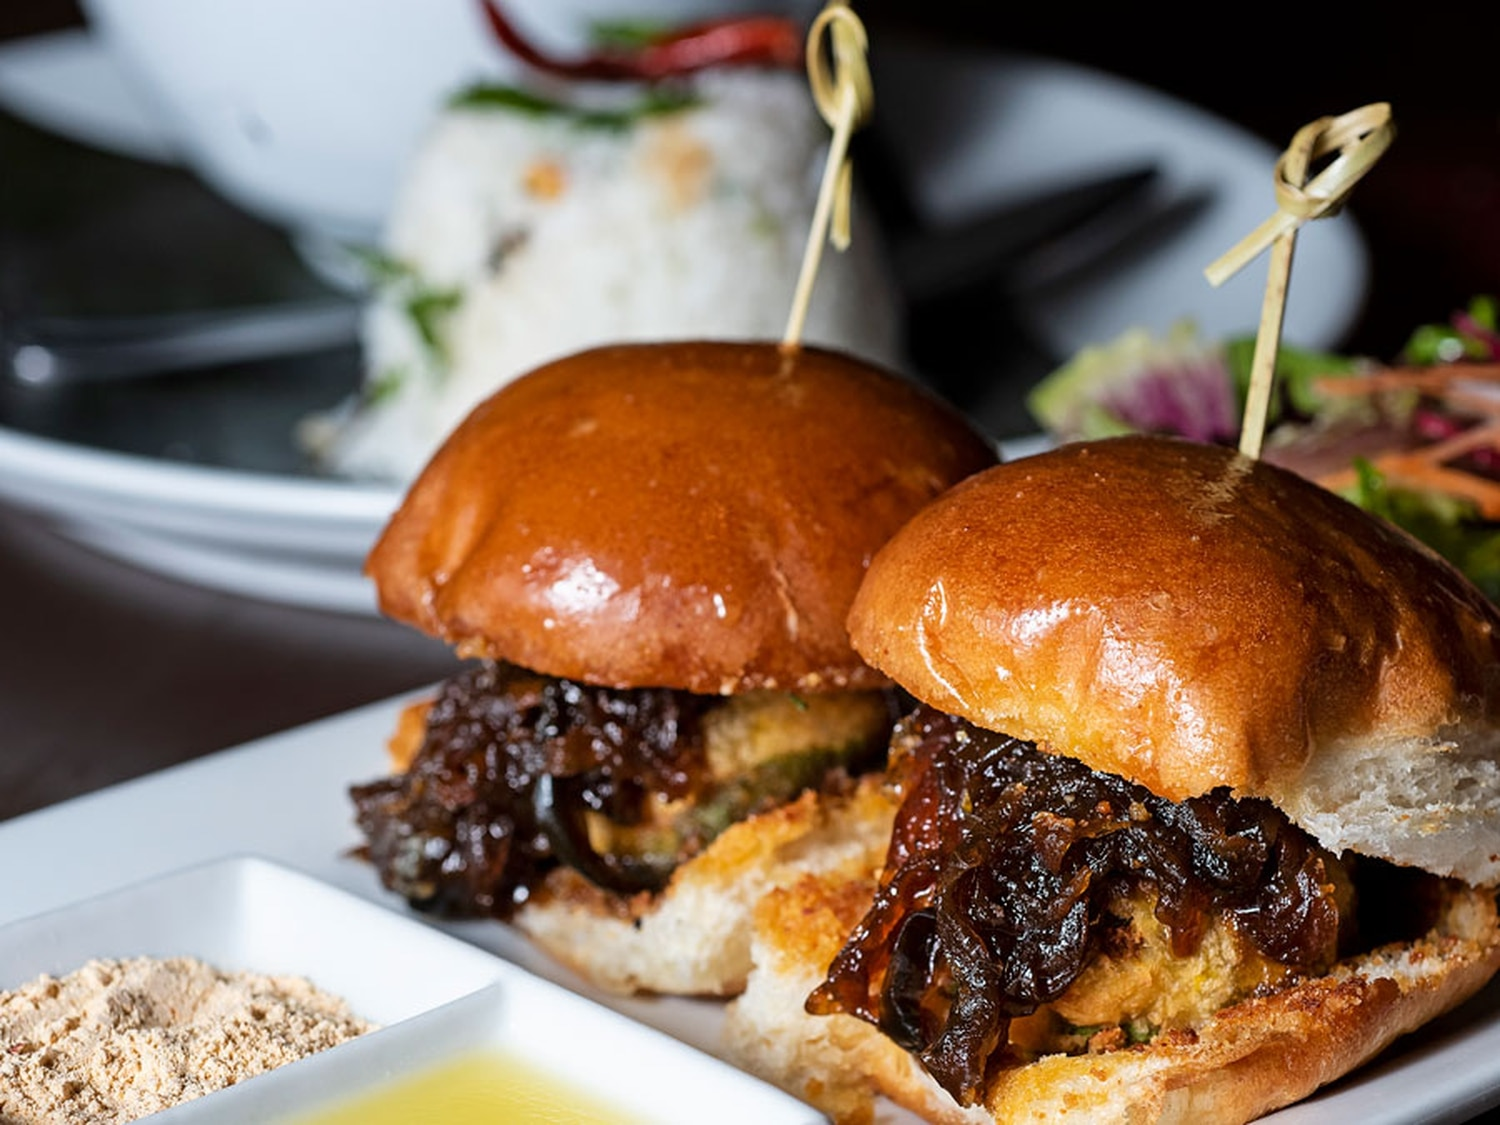 Bombay sliders with spicy potato patties, caramelized onions, mint and tamarind chutney, on a soft bun